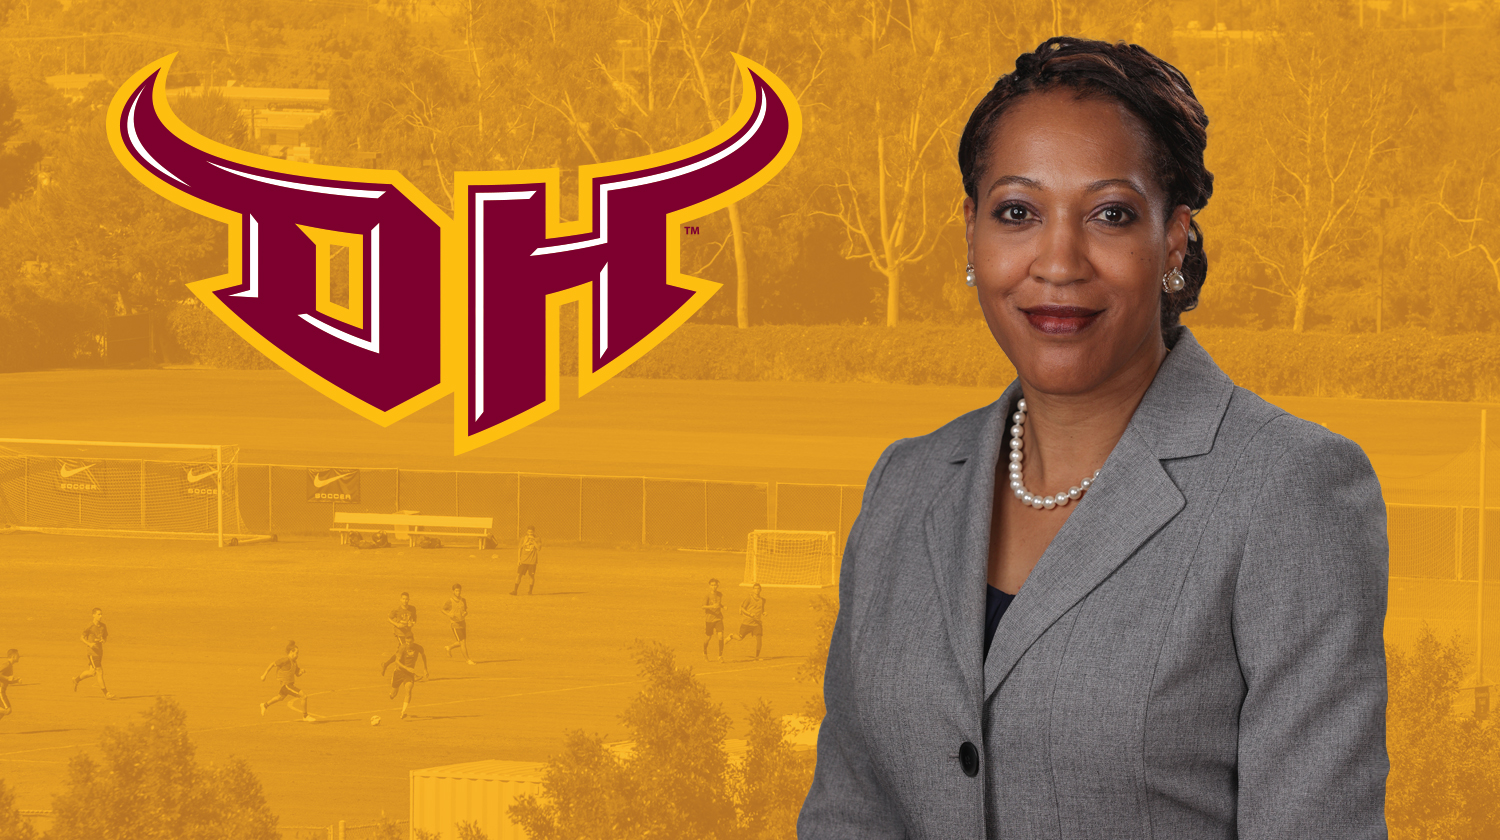 Dena Freeman-Patton has been named associate vice president/director of athletics at CSUDH.